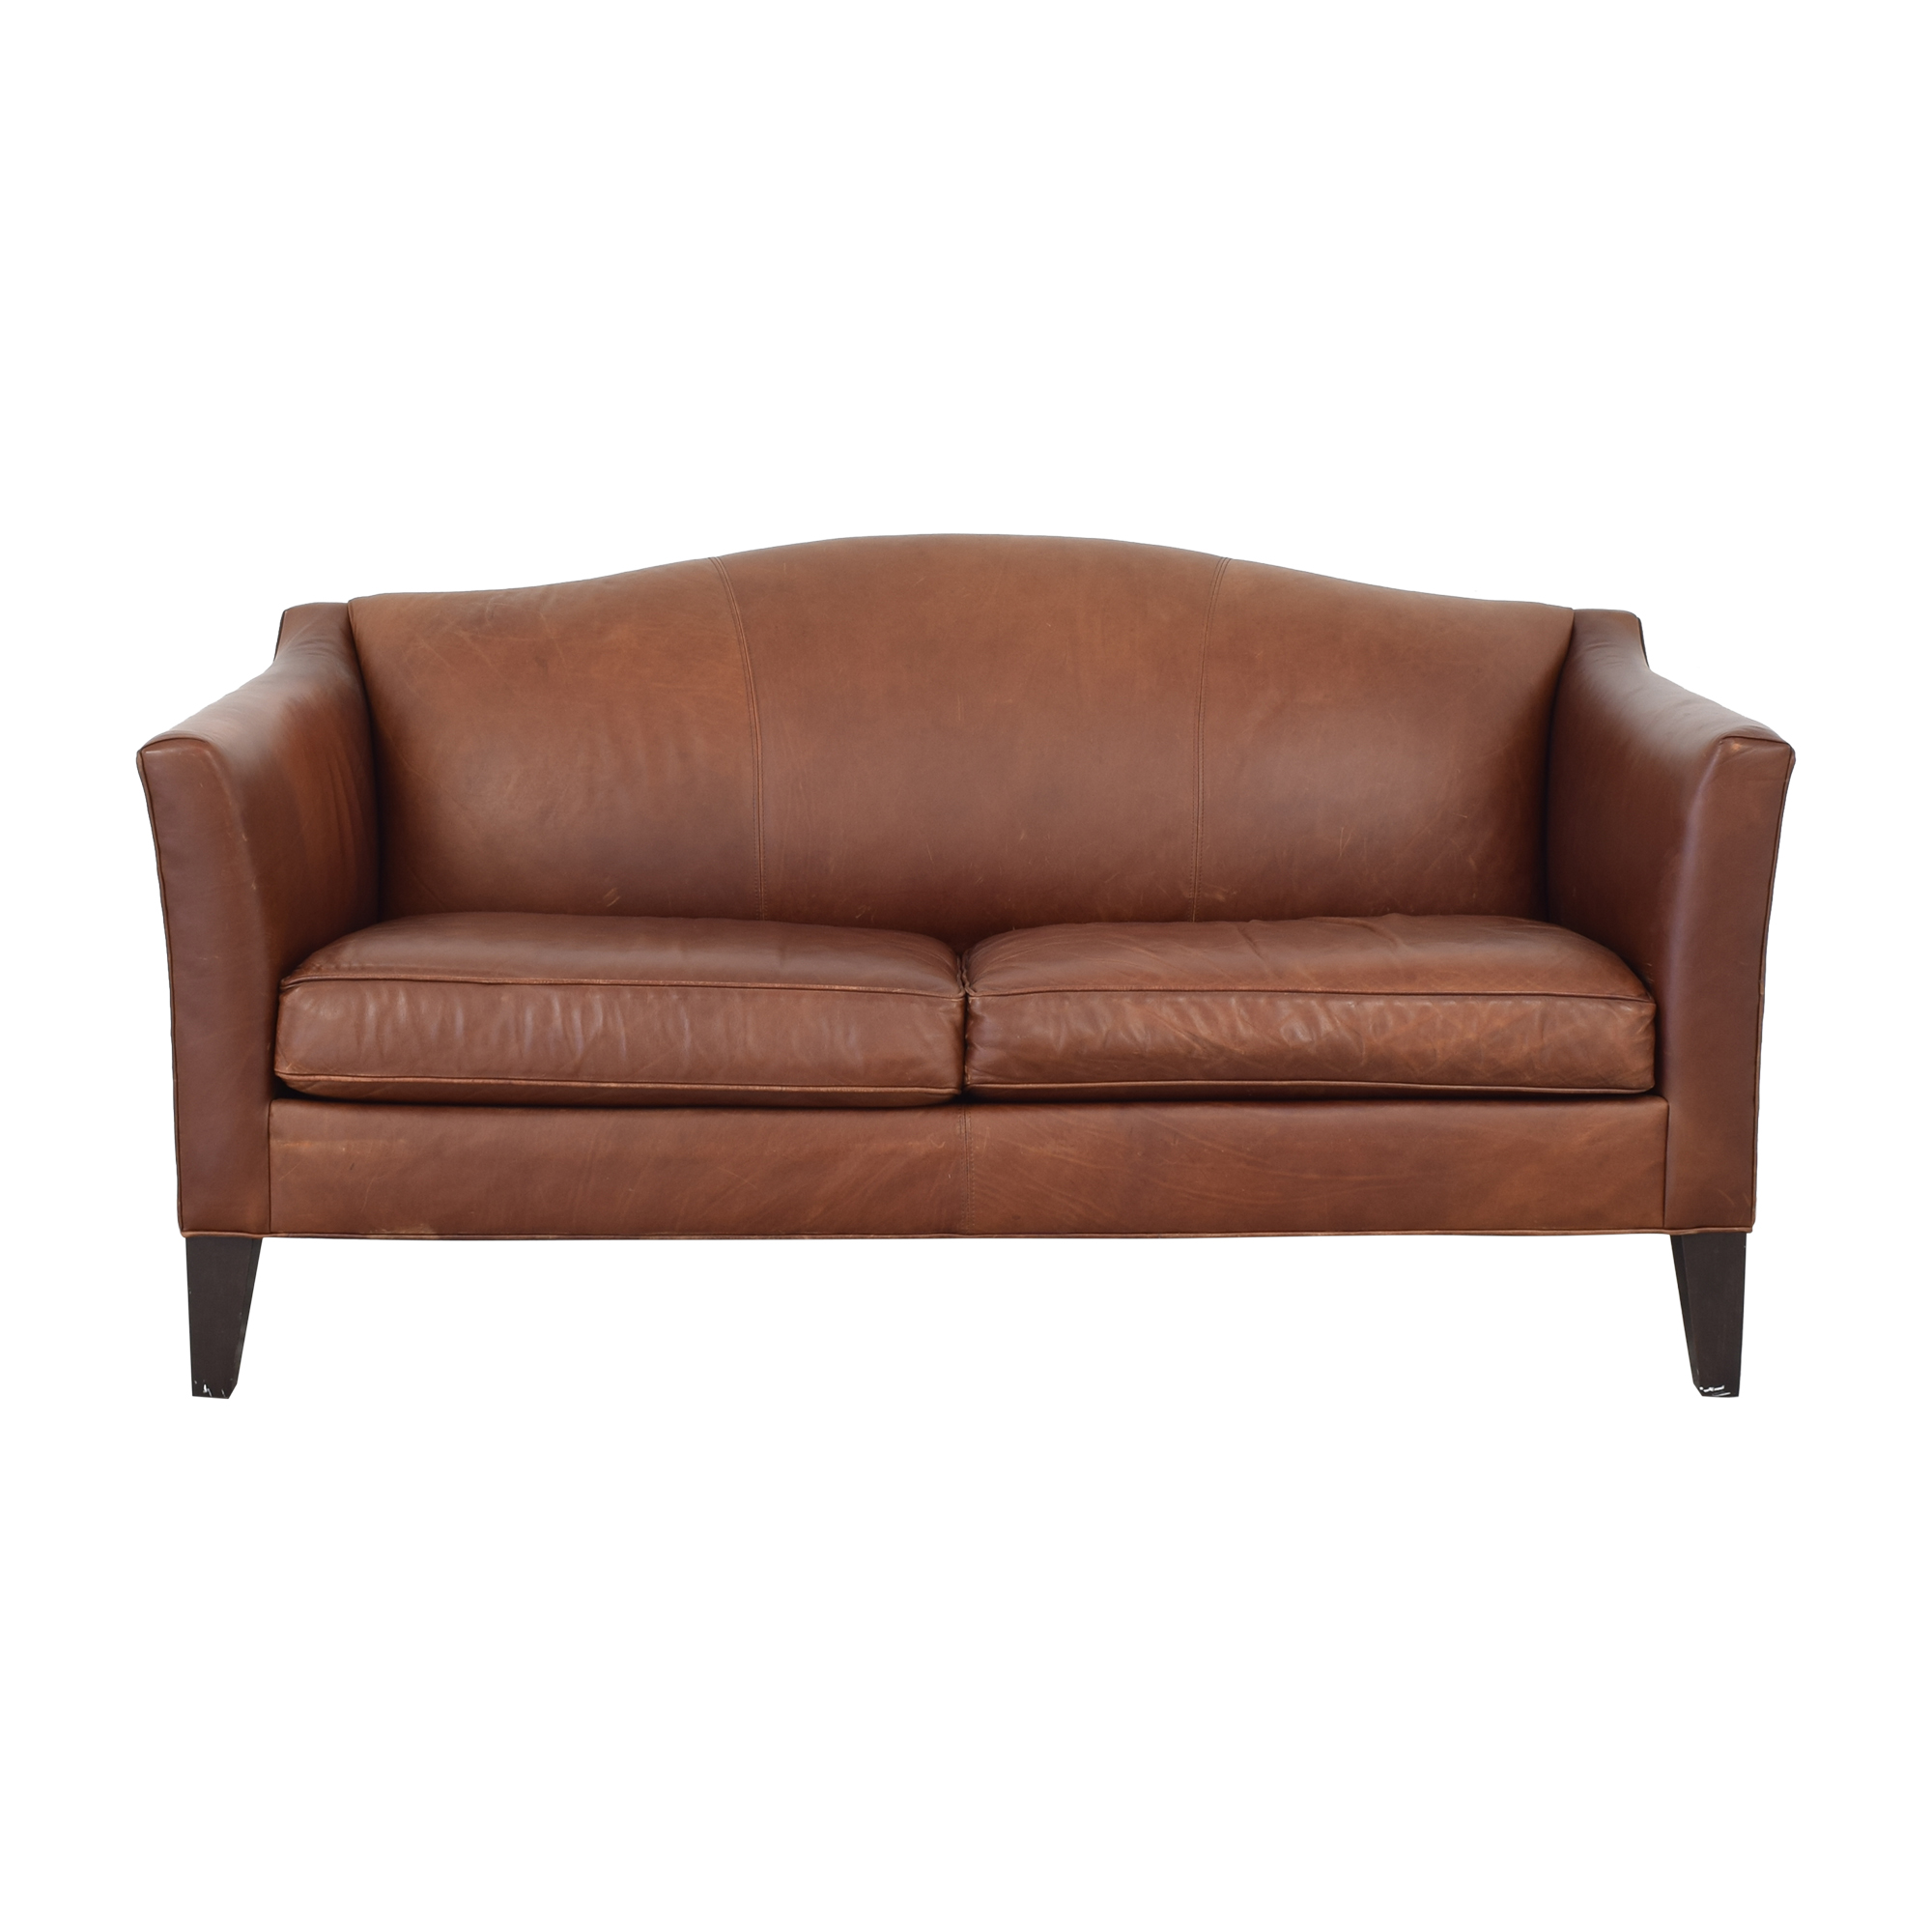 Ethan Allen Leather Camelback Sofa / Classic Sofas